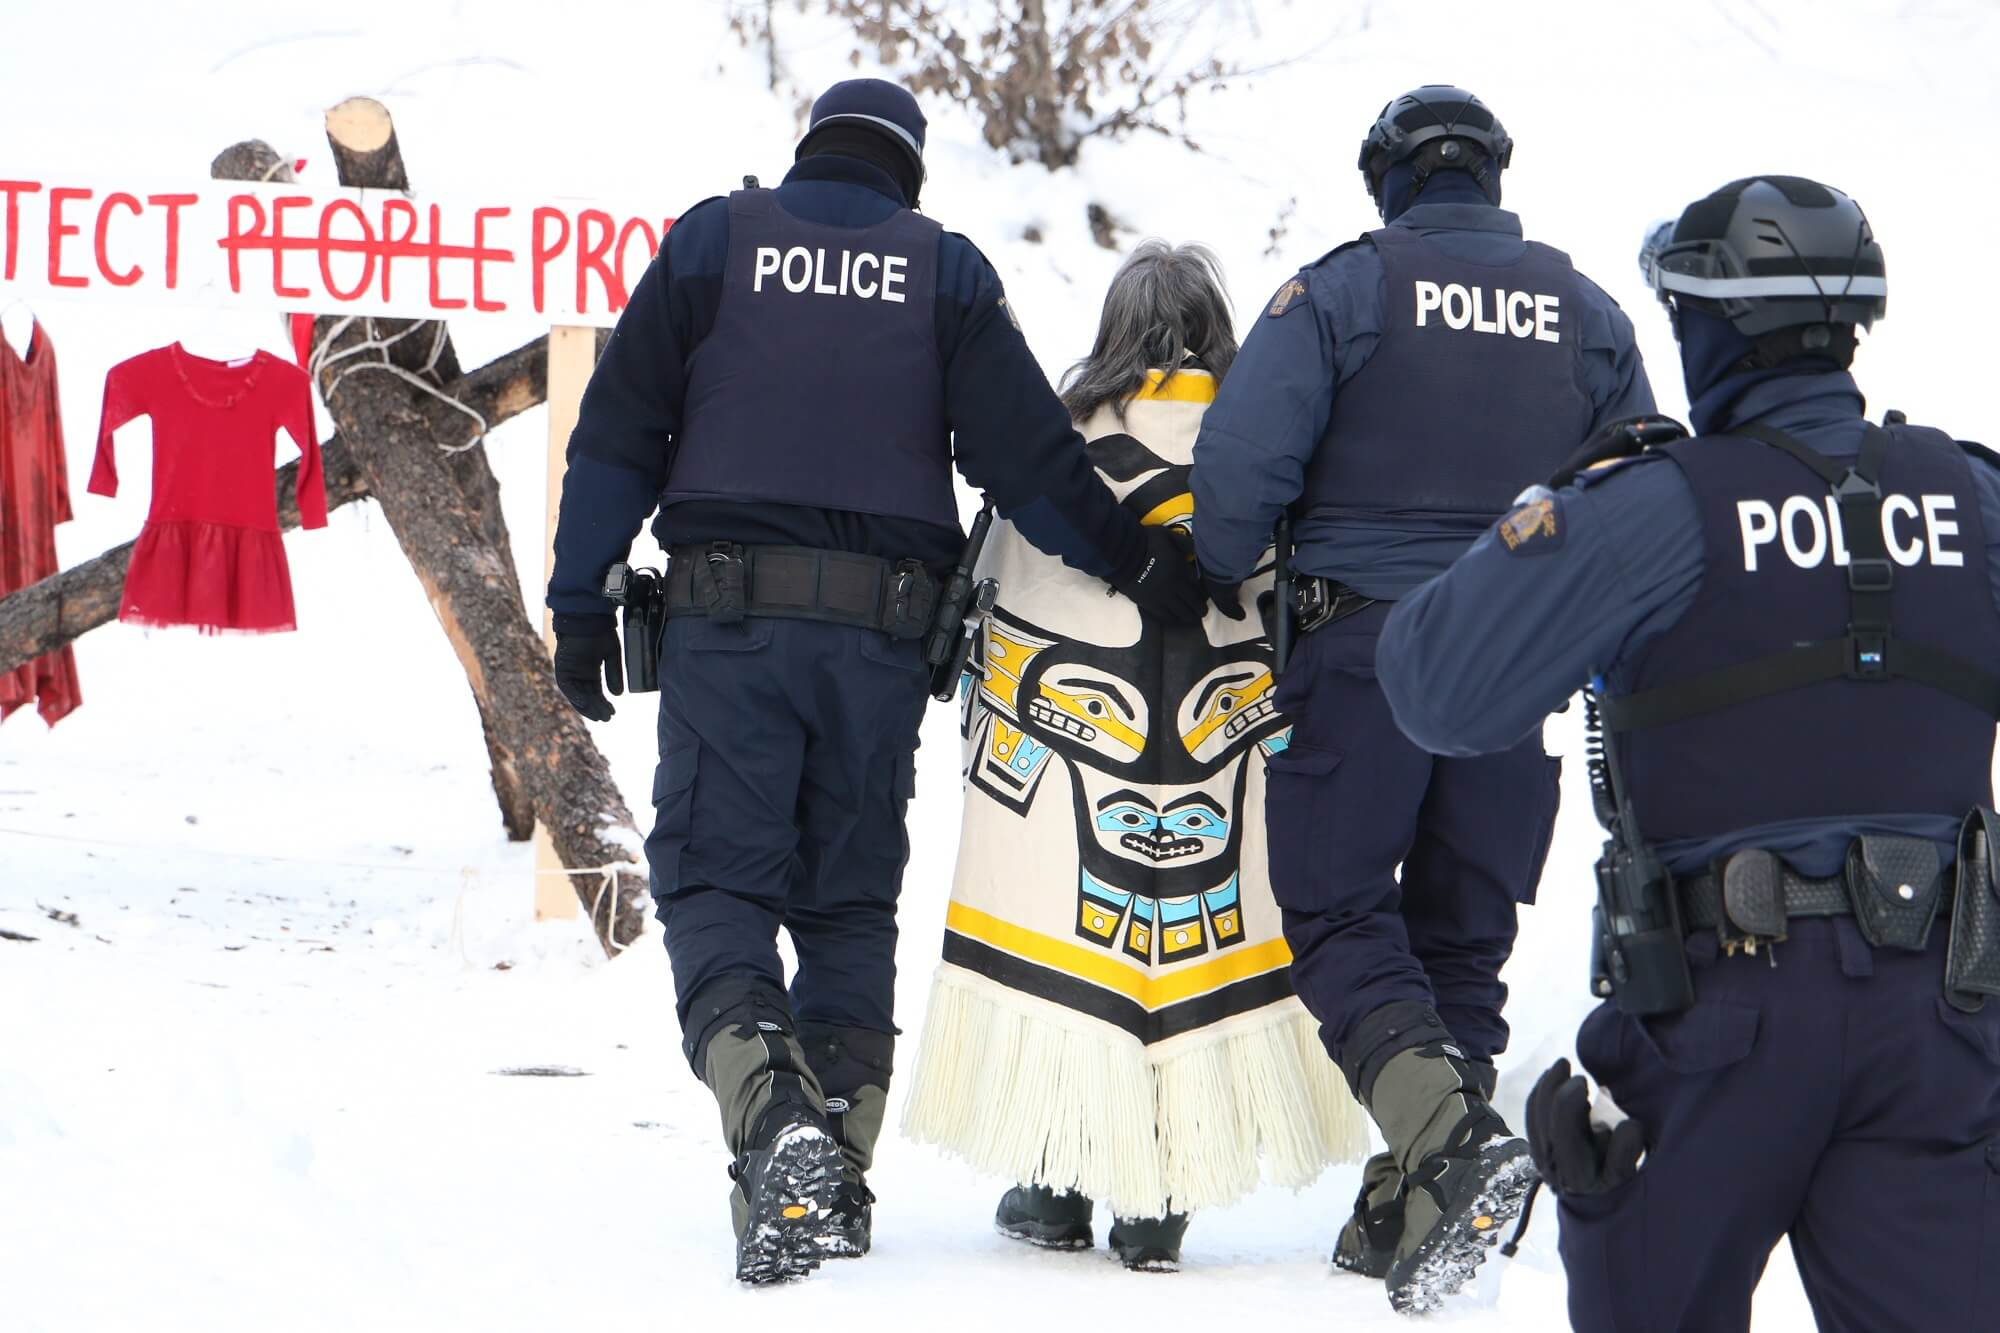 Three police officers escort a person in Indigenous clothing.